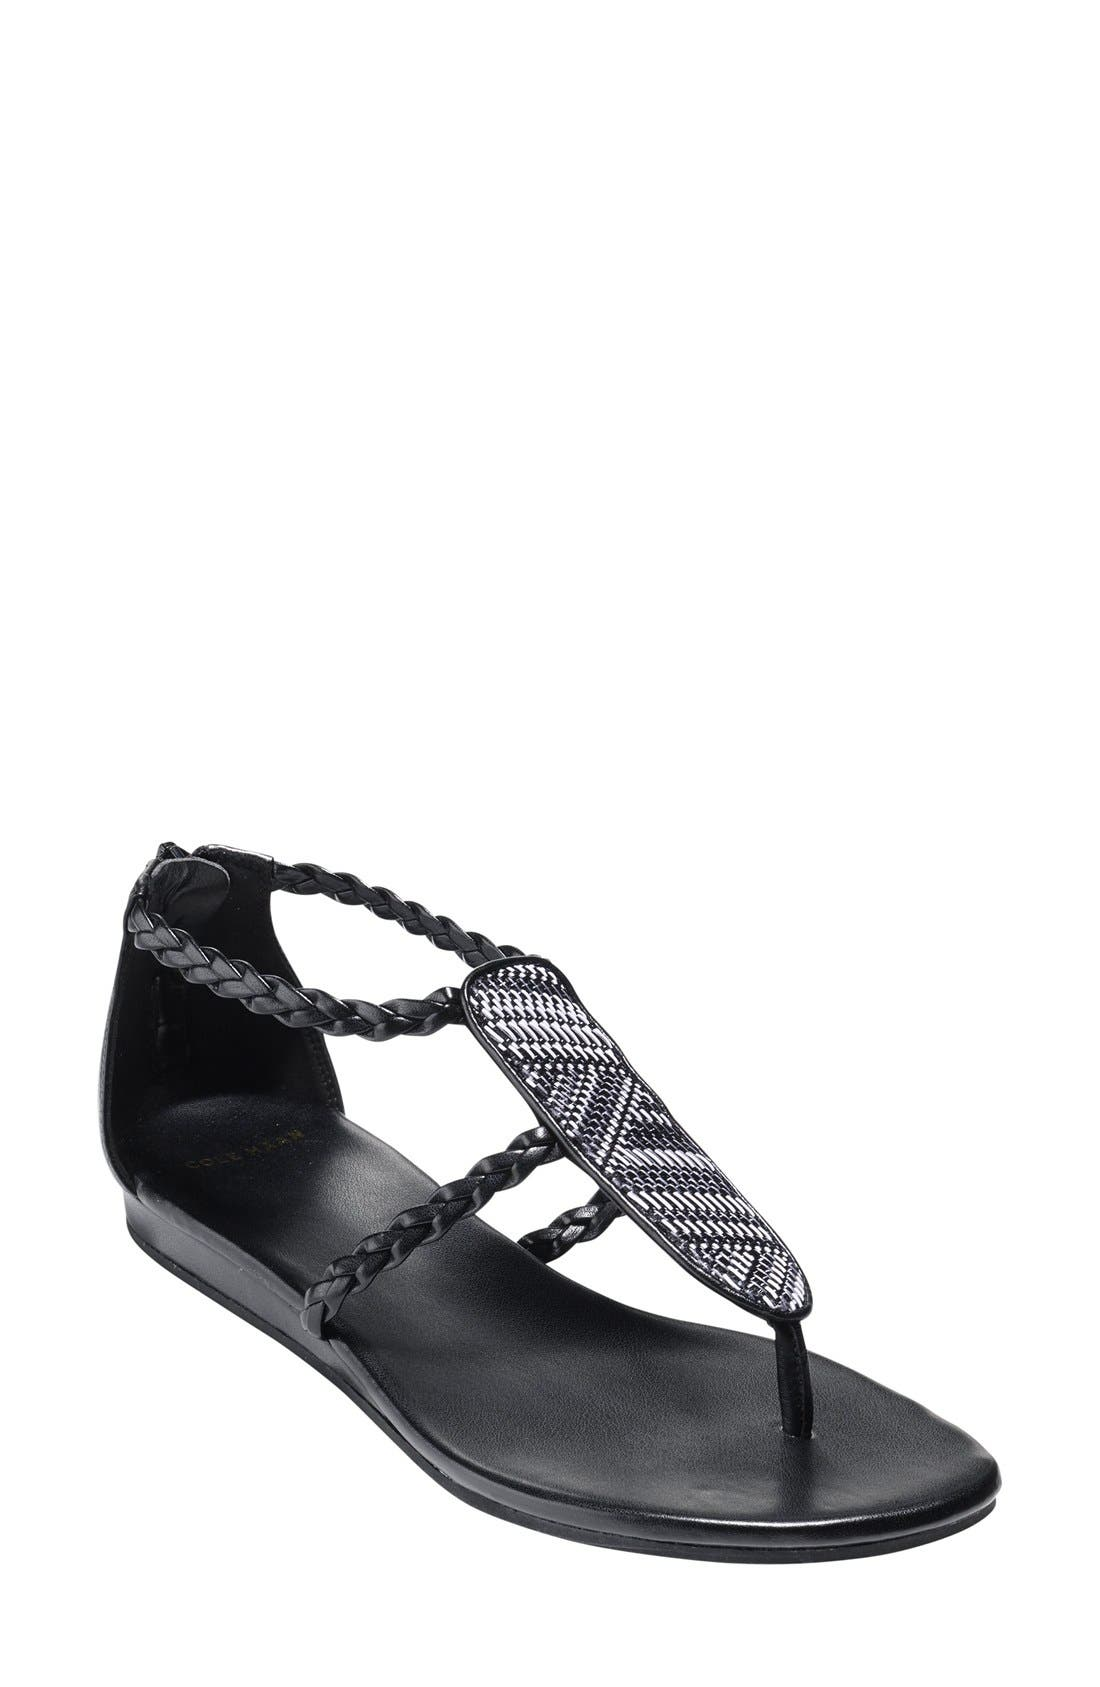 'Abbe' Sandal,                         Main,                         color, Black/ White Leather